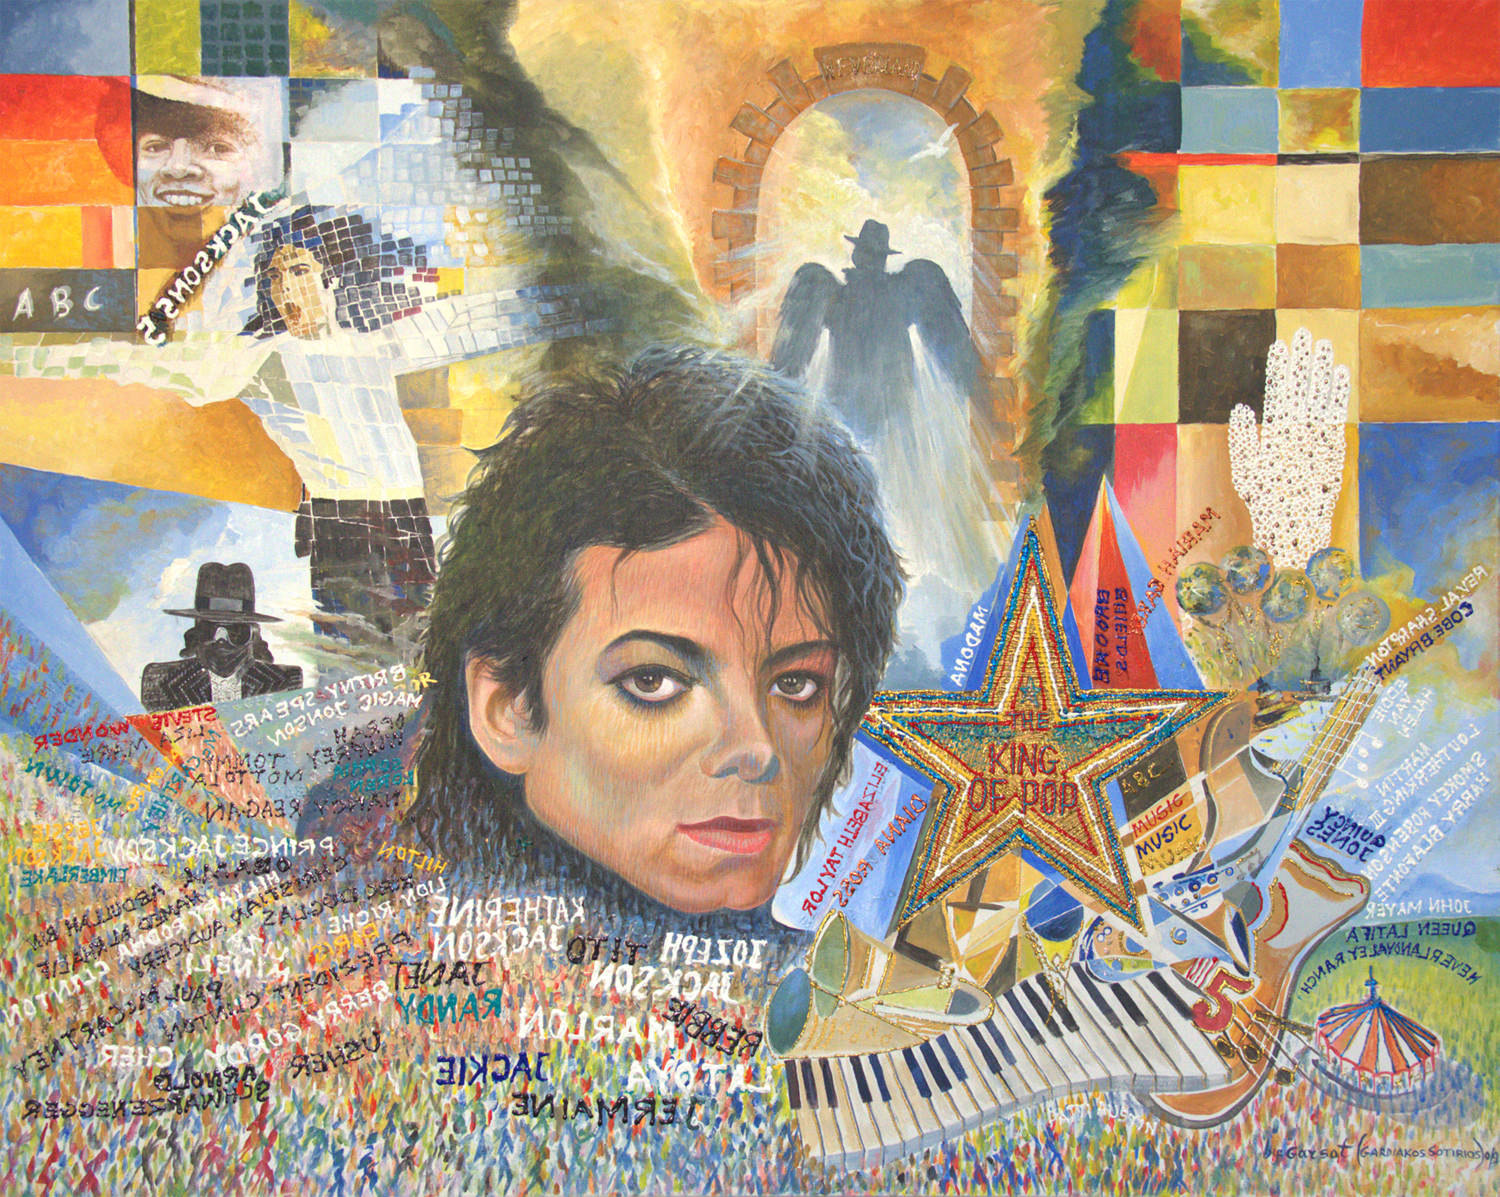 King of Pop 2009.jpg